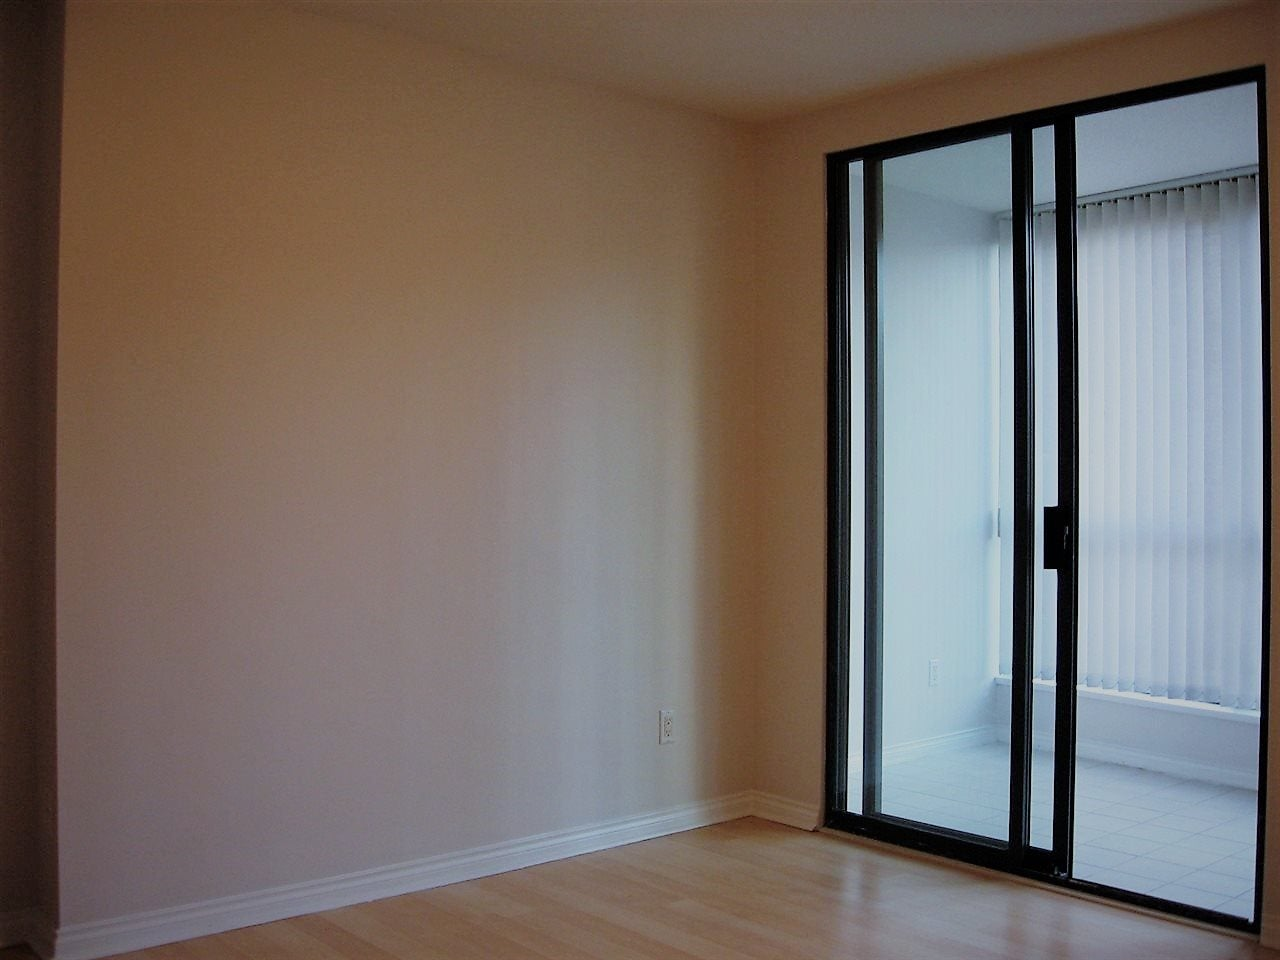 801 1189 HOWE STREET - Downtown VW Apartment/Condo for sale, 1 Bedroom (R2423012) - #6